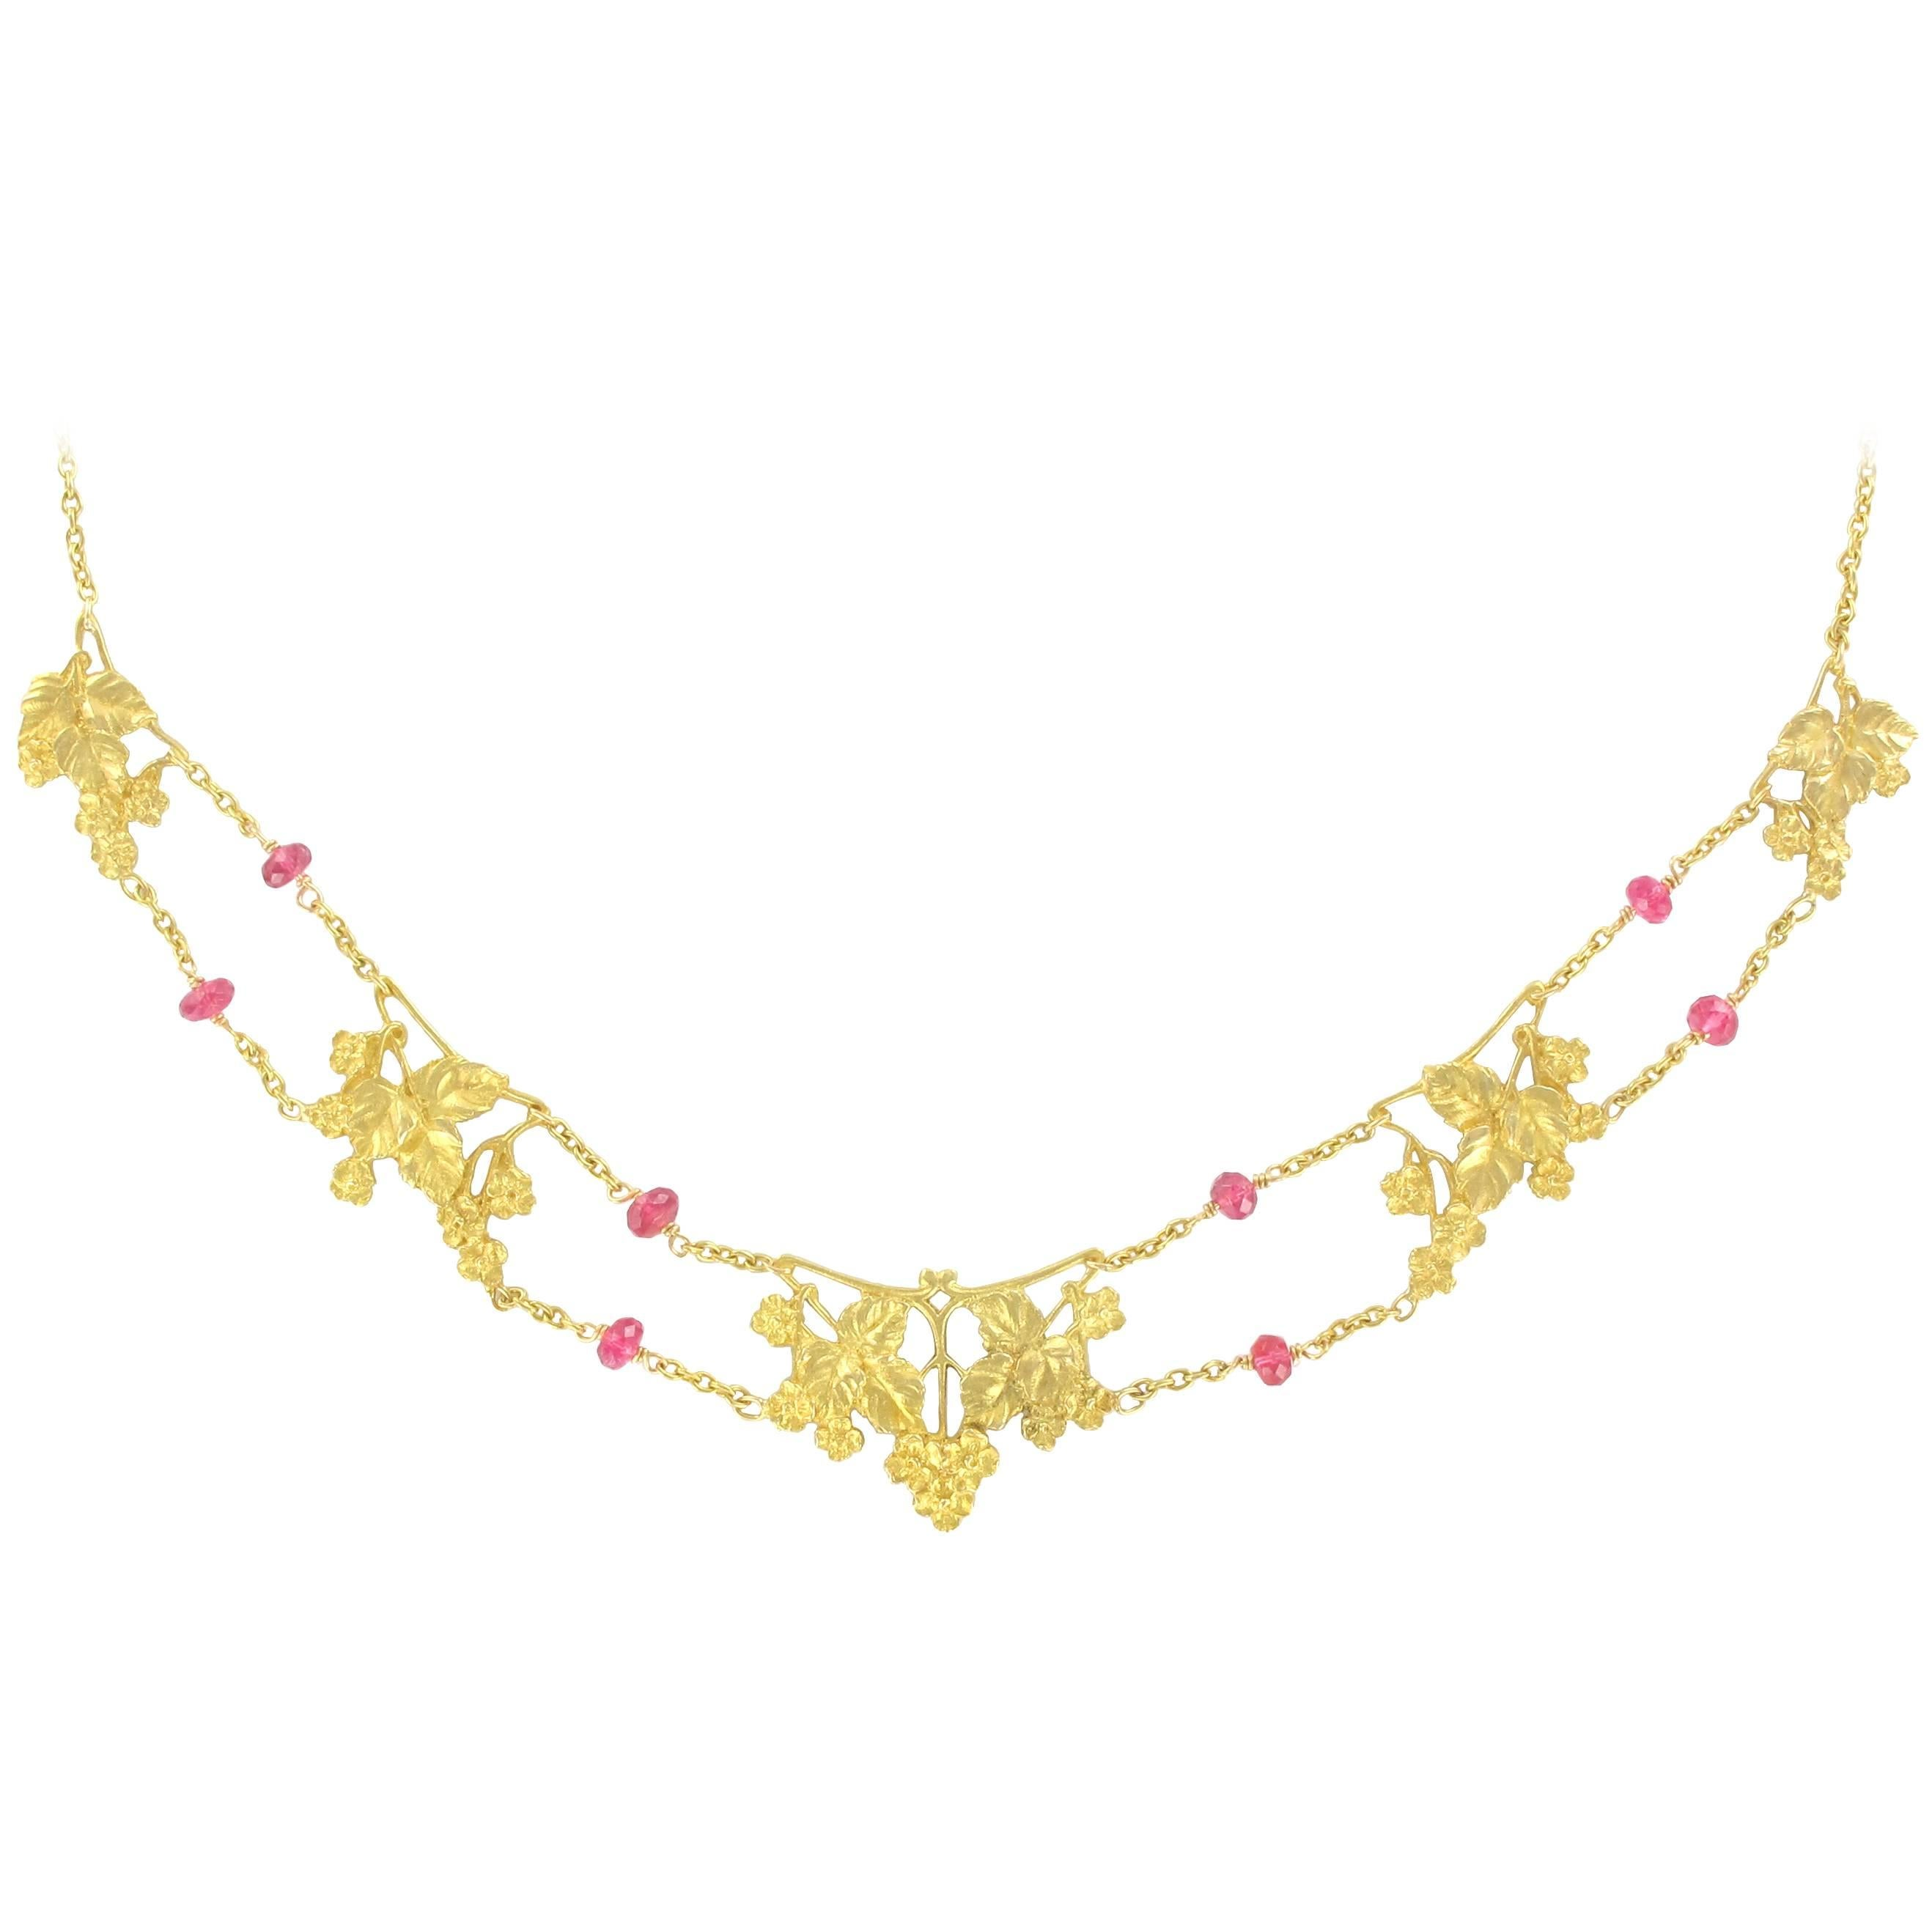 French 1950s 18 Carat Yellow Gold Pink Spinel Beads Drapery Necklace